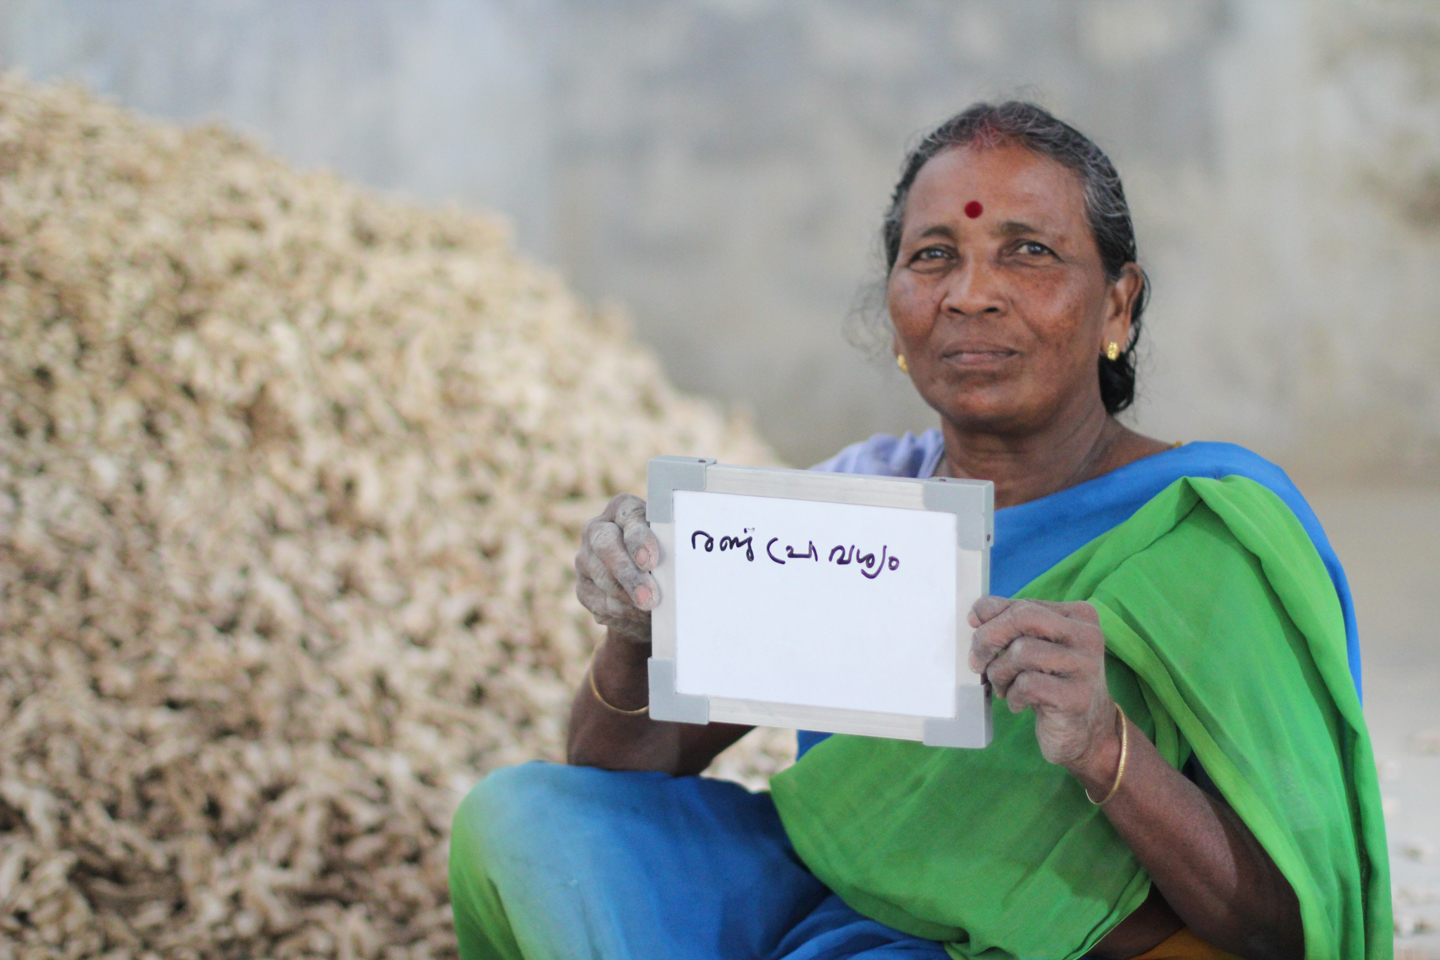 Bebi works at the Ginger Palace in Fort Kochi, where she sorts giant mounds of dried ginger root into piles of larger and smaller pieces for export. She drinks chai two times a day - once at 10 am and once at 4:30 pm.